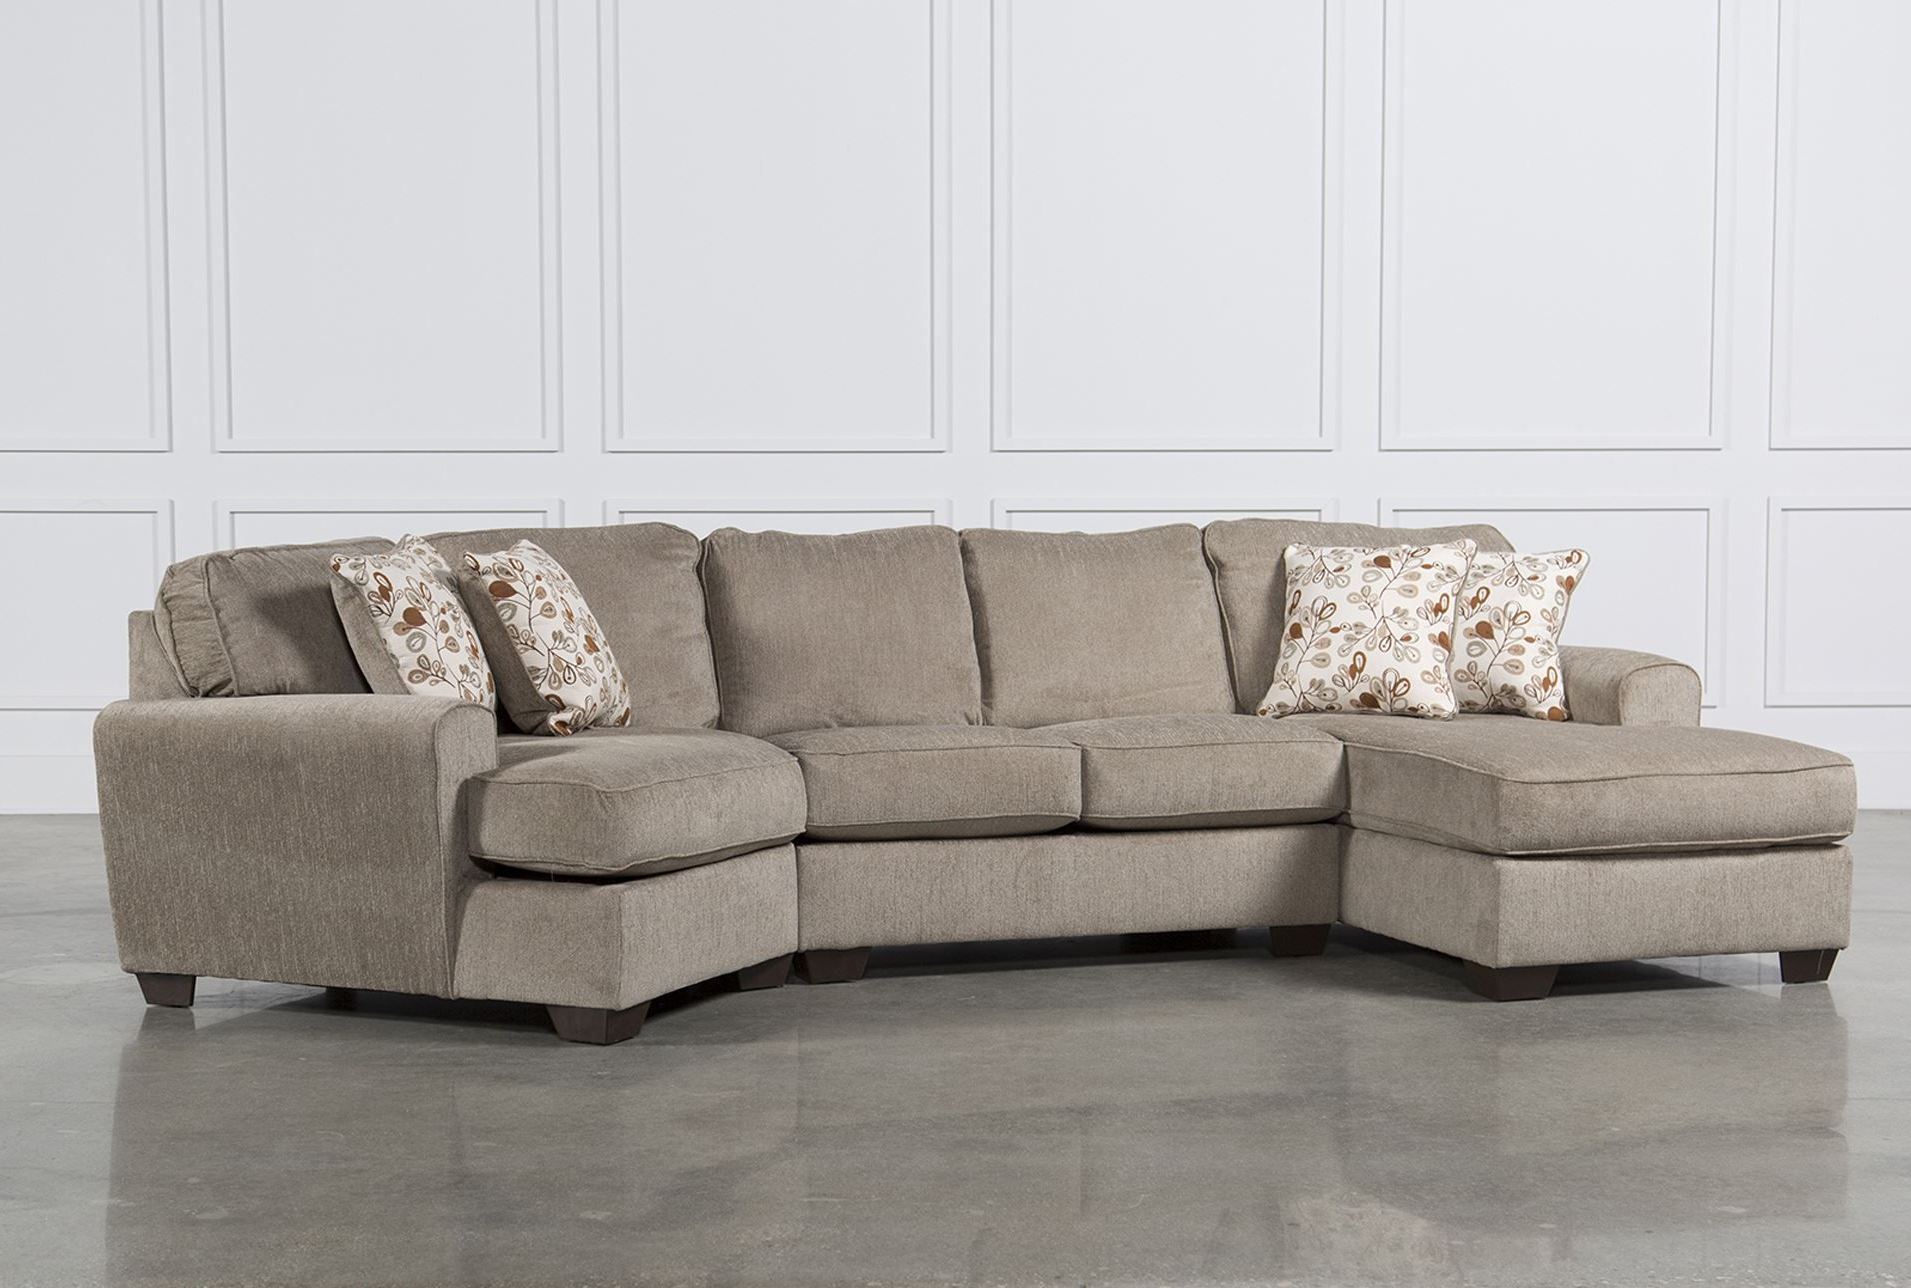 Widely Used Cuddler Sectional Sofa Carena 2 Pc Fabric Sectional Sofa Throughout 2Pc Maddox Right Arm Facing Sectional Sofas With Chaise Brown (View 3 of 25)